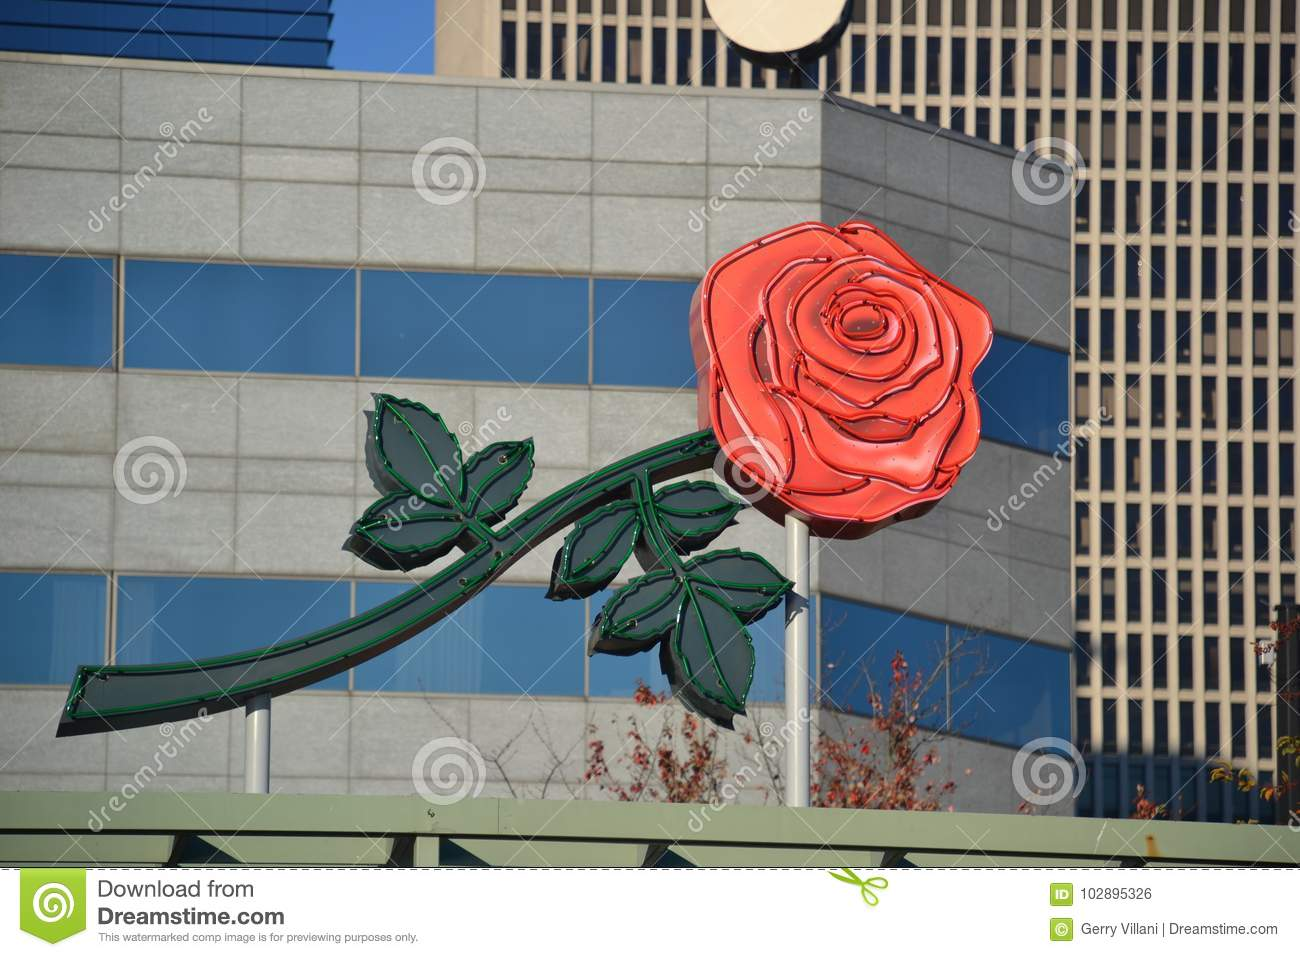 Rose Sign on Building in Portland, Oregon